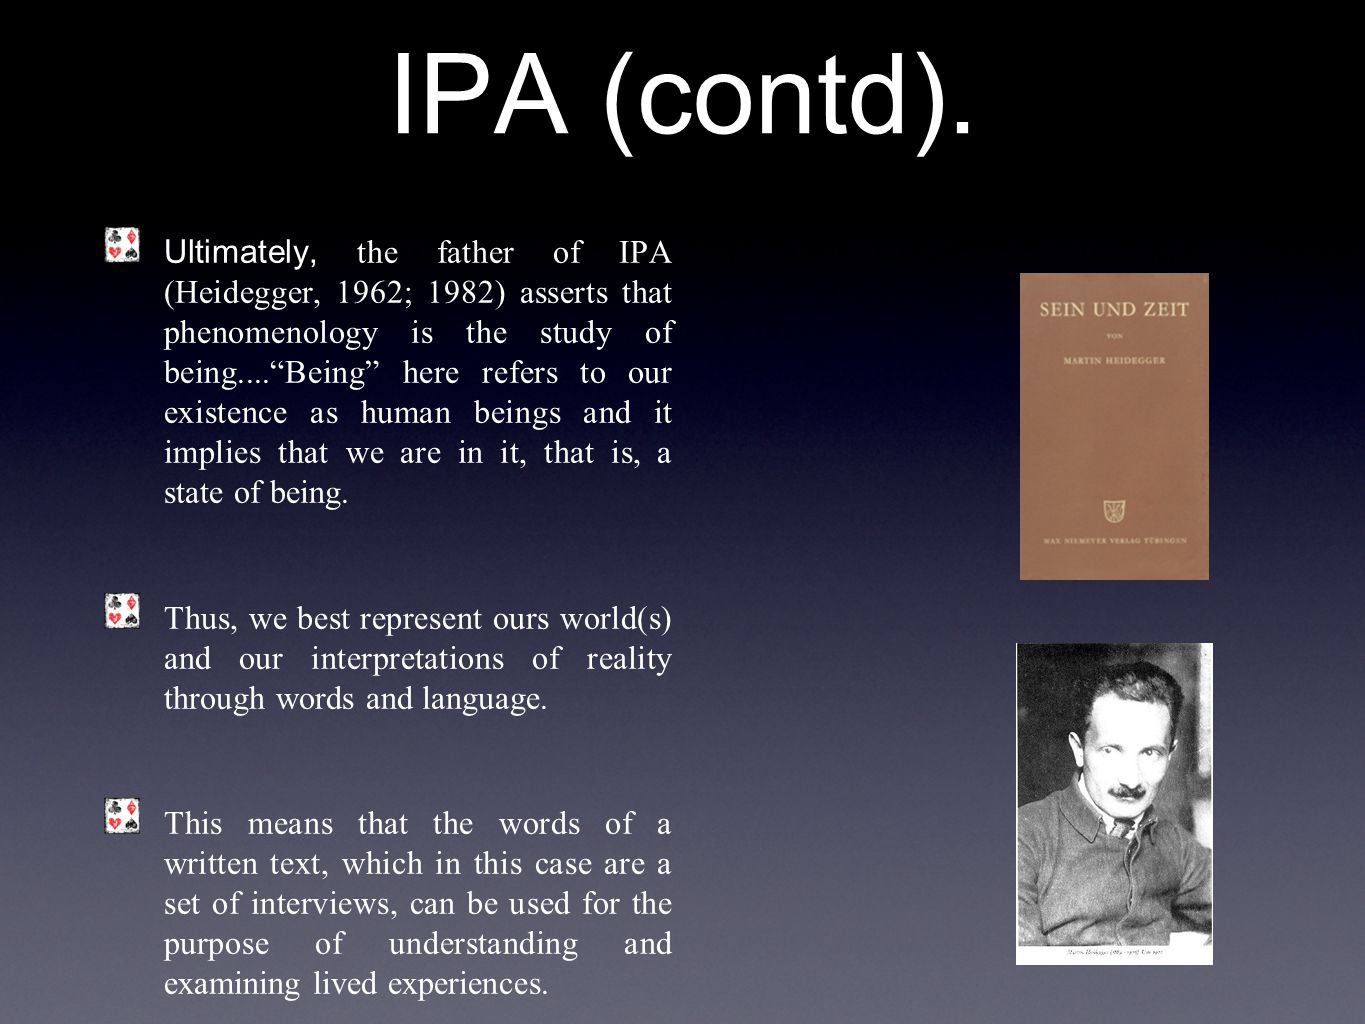 "IPA (contd). Ultimately, the father of IPA (Heidegger, 1962; 1982) asserts that phenomenology is the study of being....""Being"" here refers to our exis"